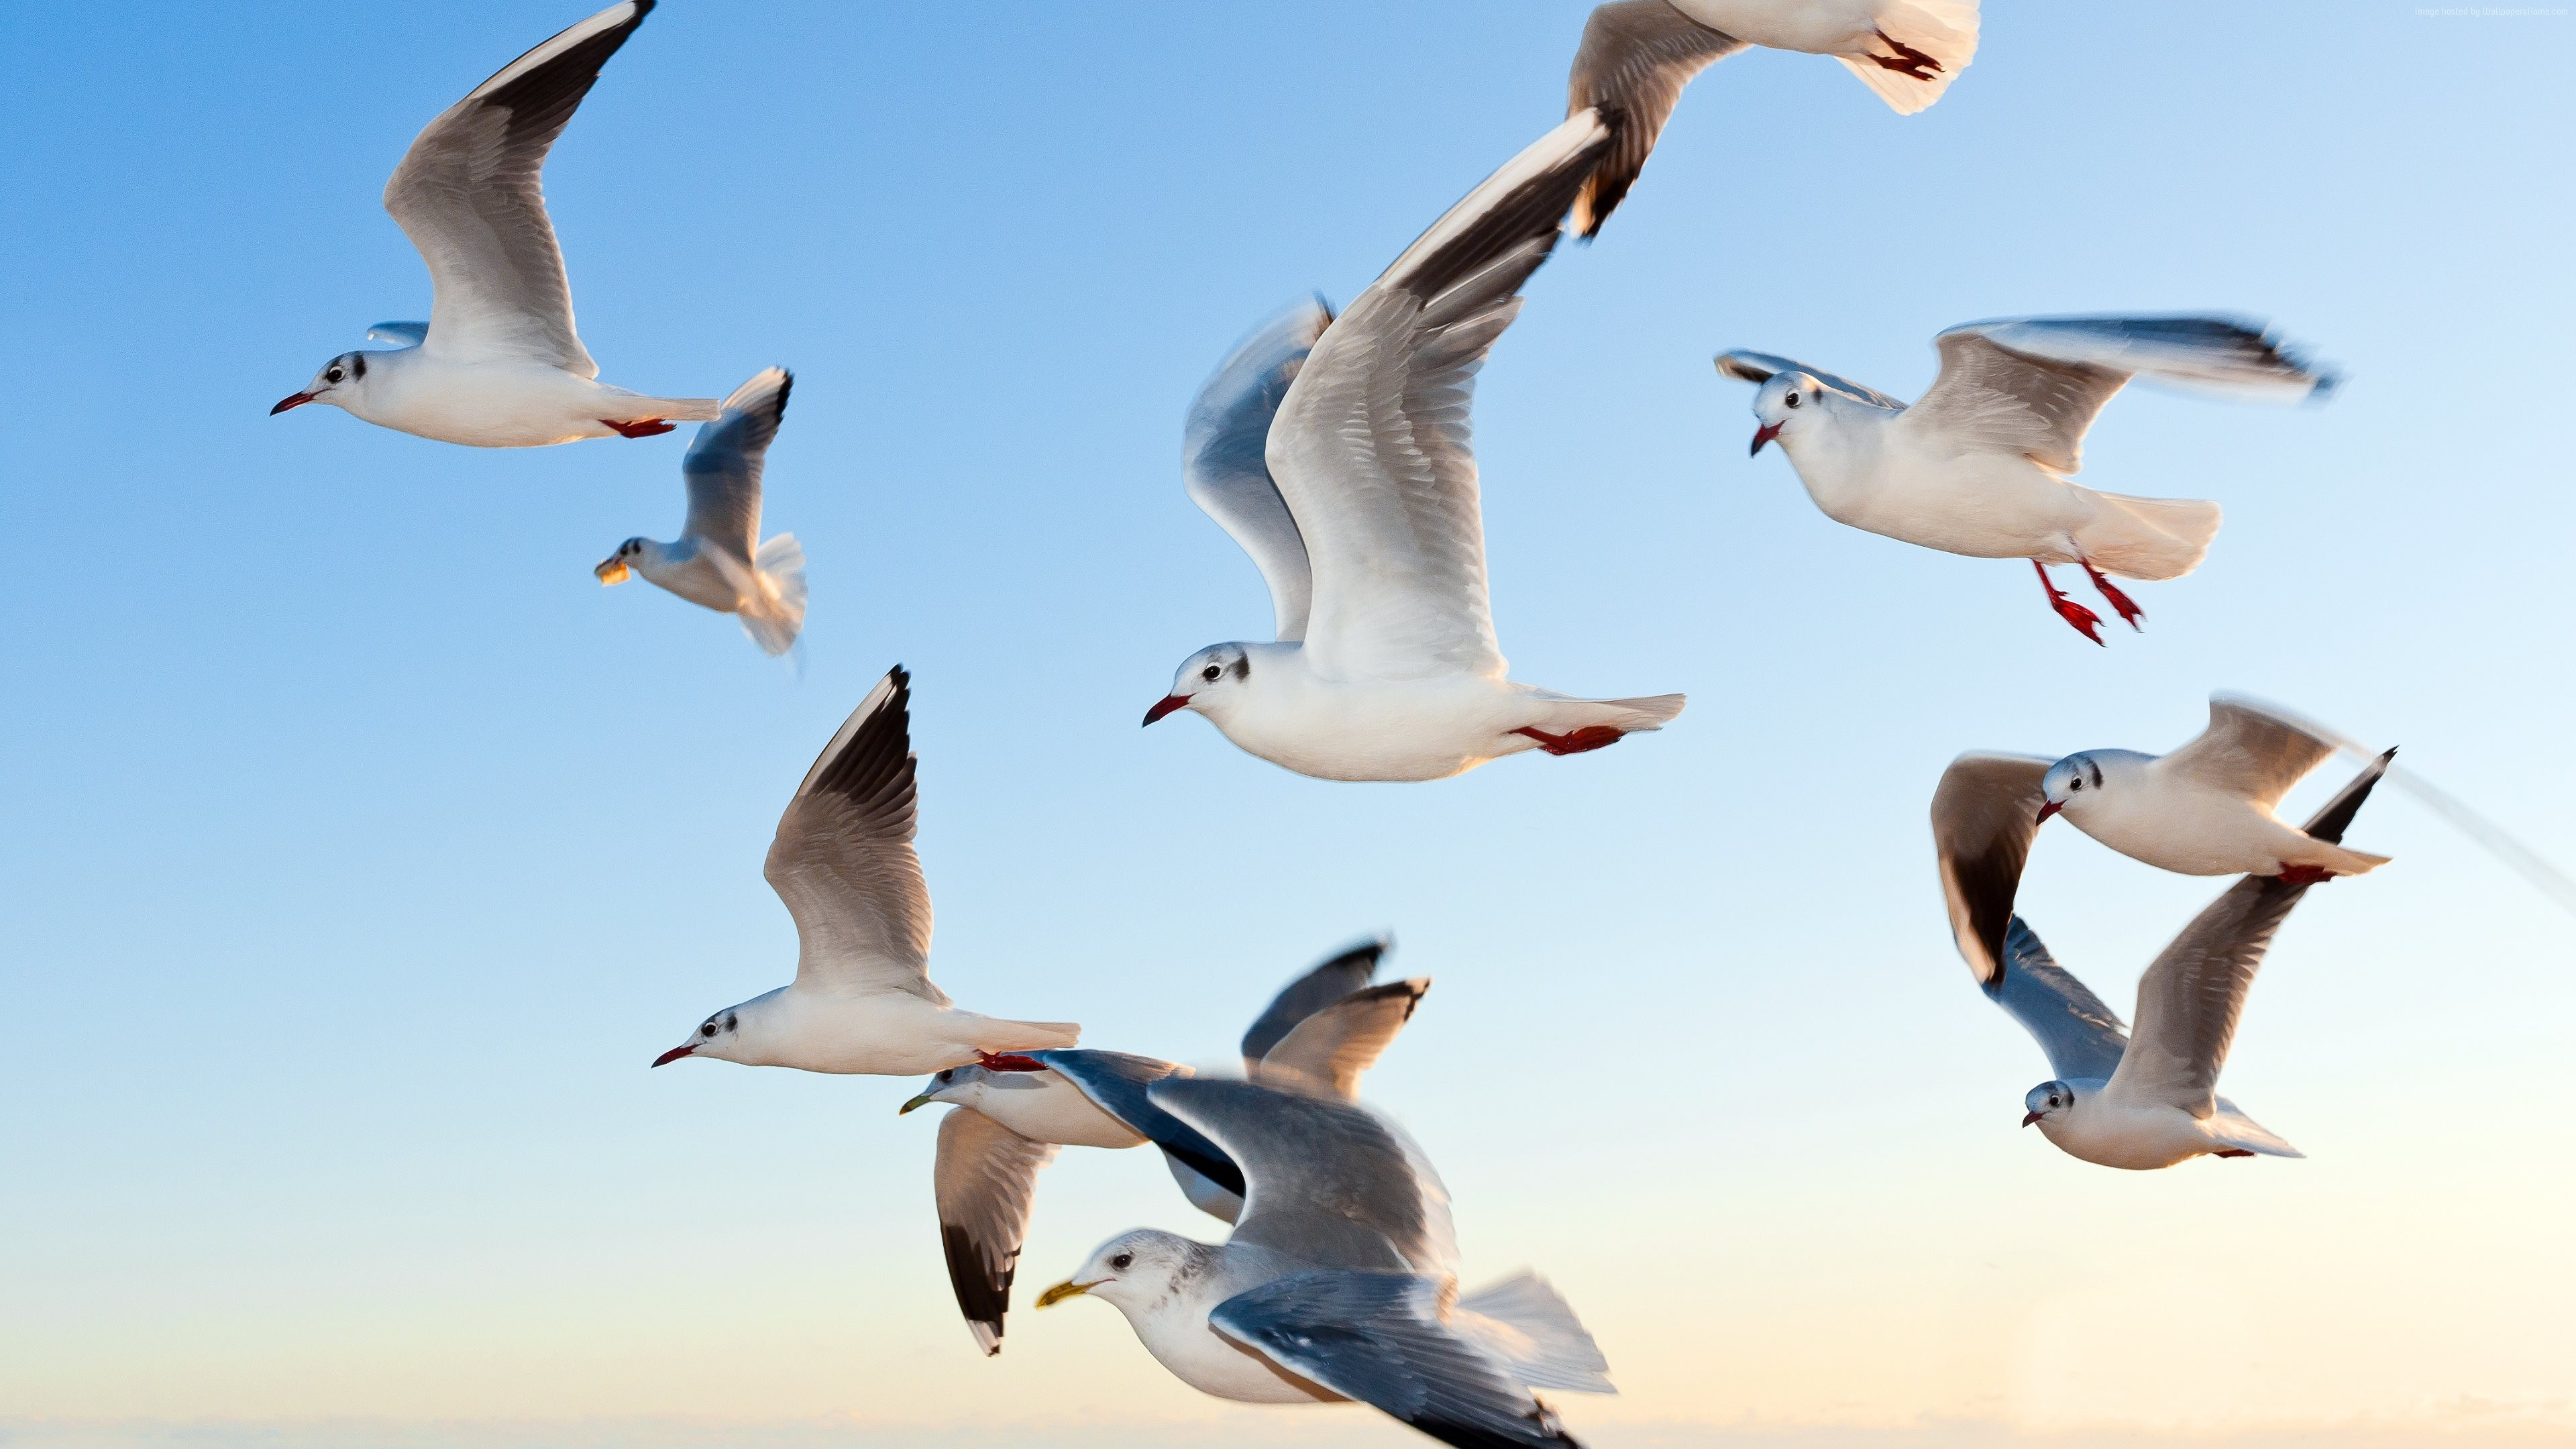 Stock Images gull, sky, seagulls, Stock Images